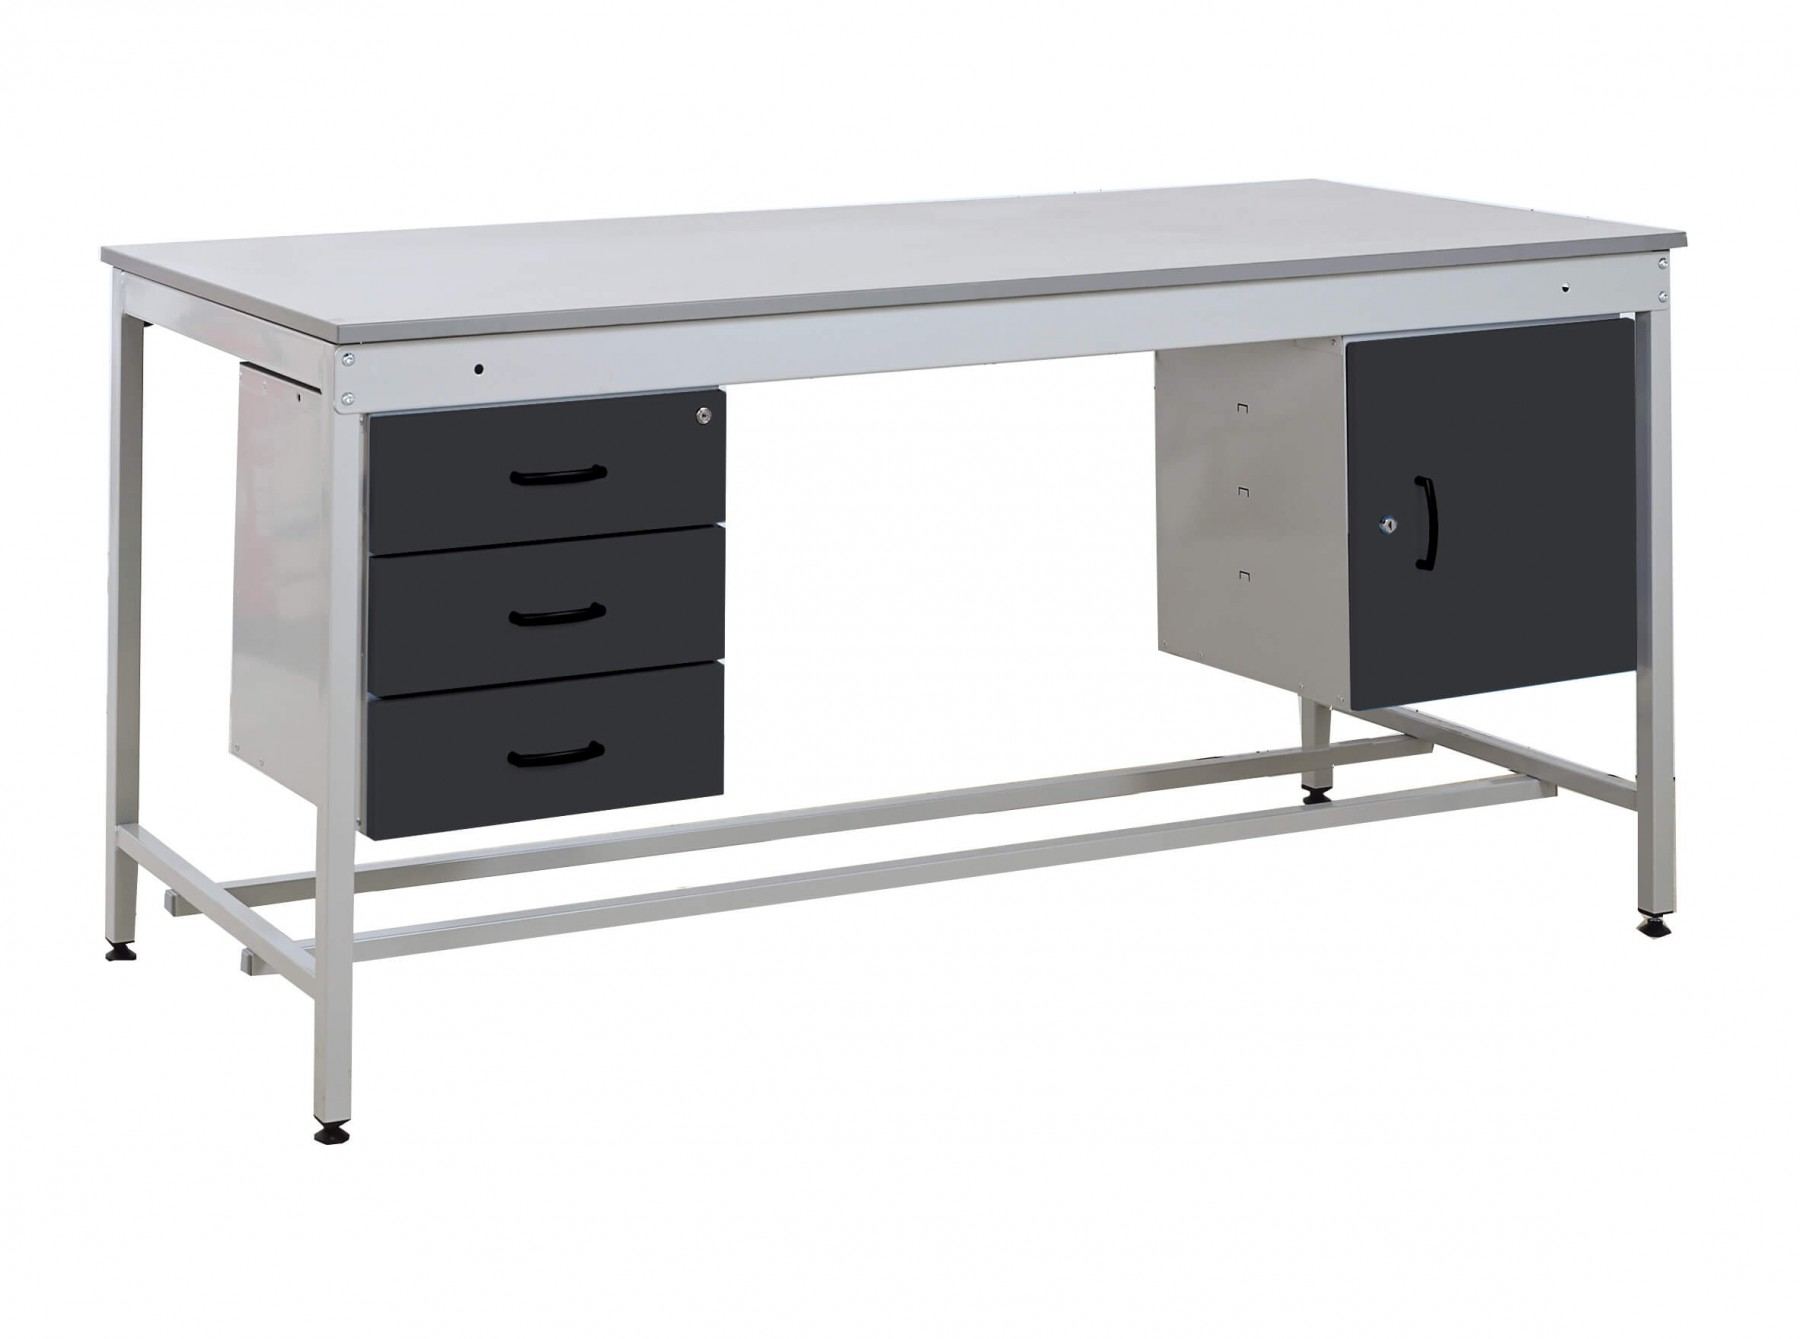 Taurus Utility Workbench - Triple drawer & Single cupboard